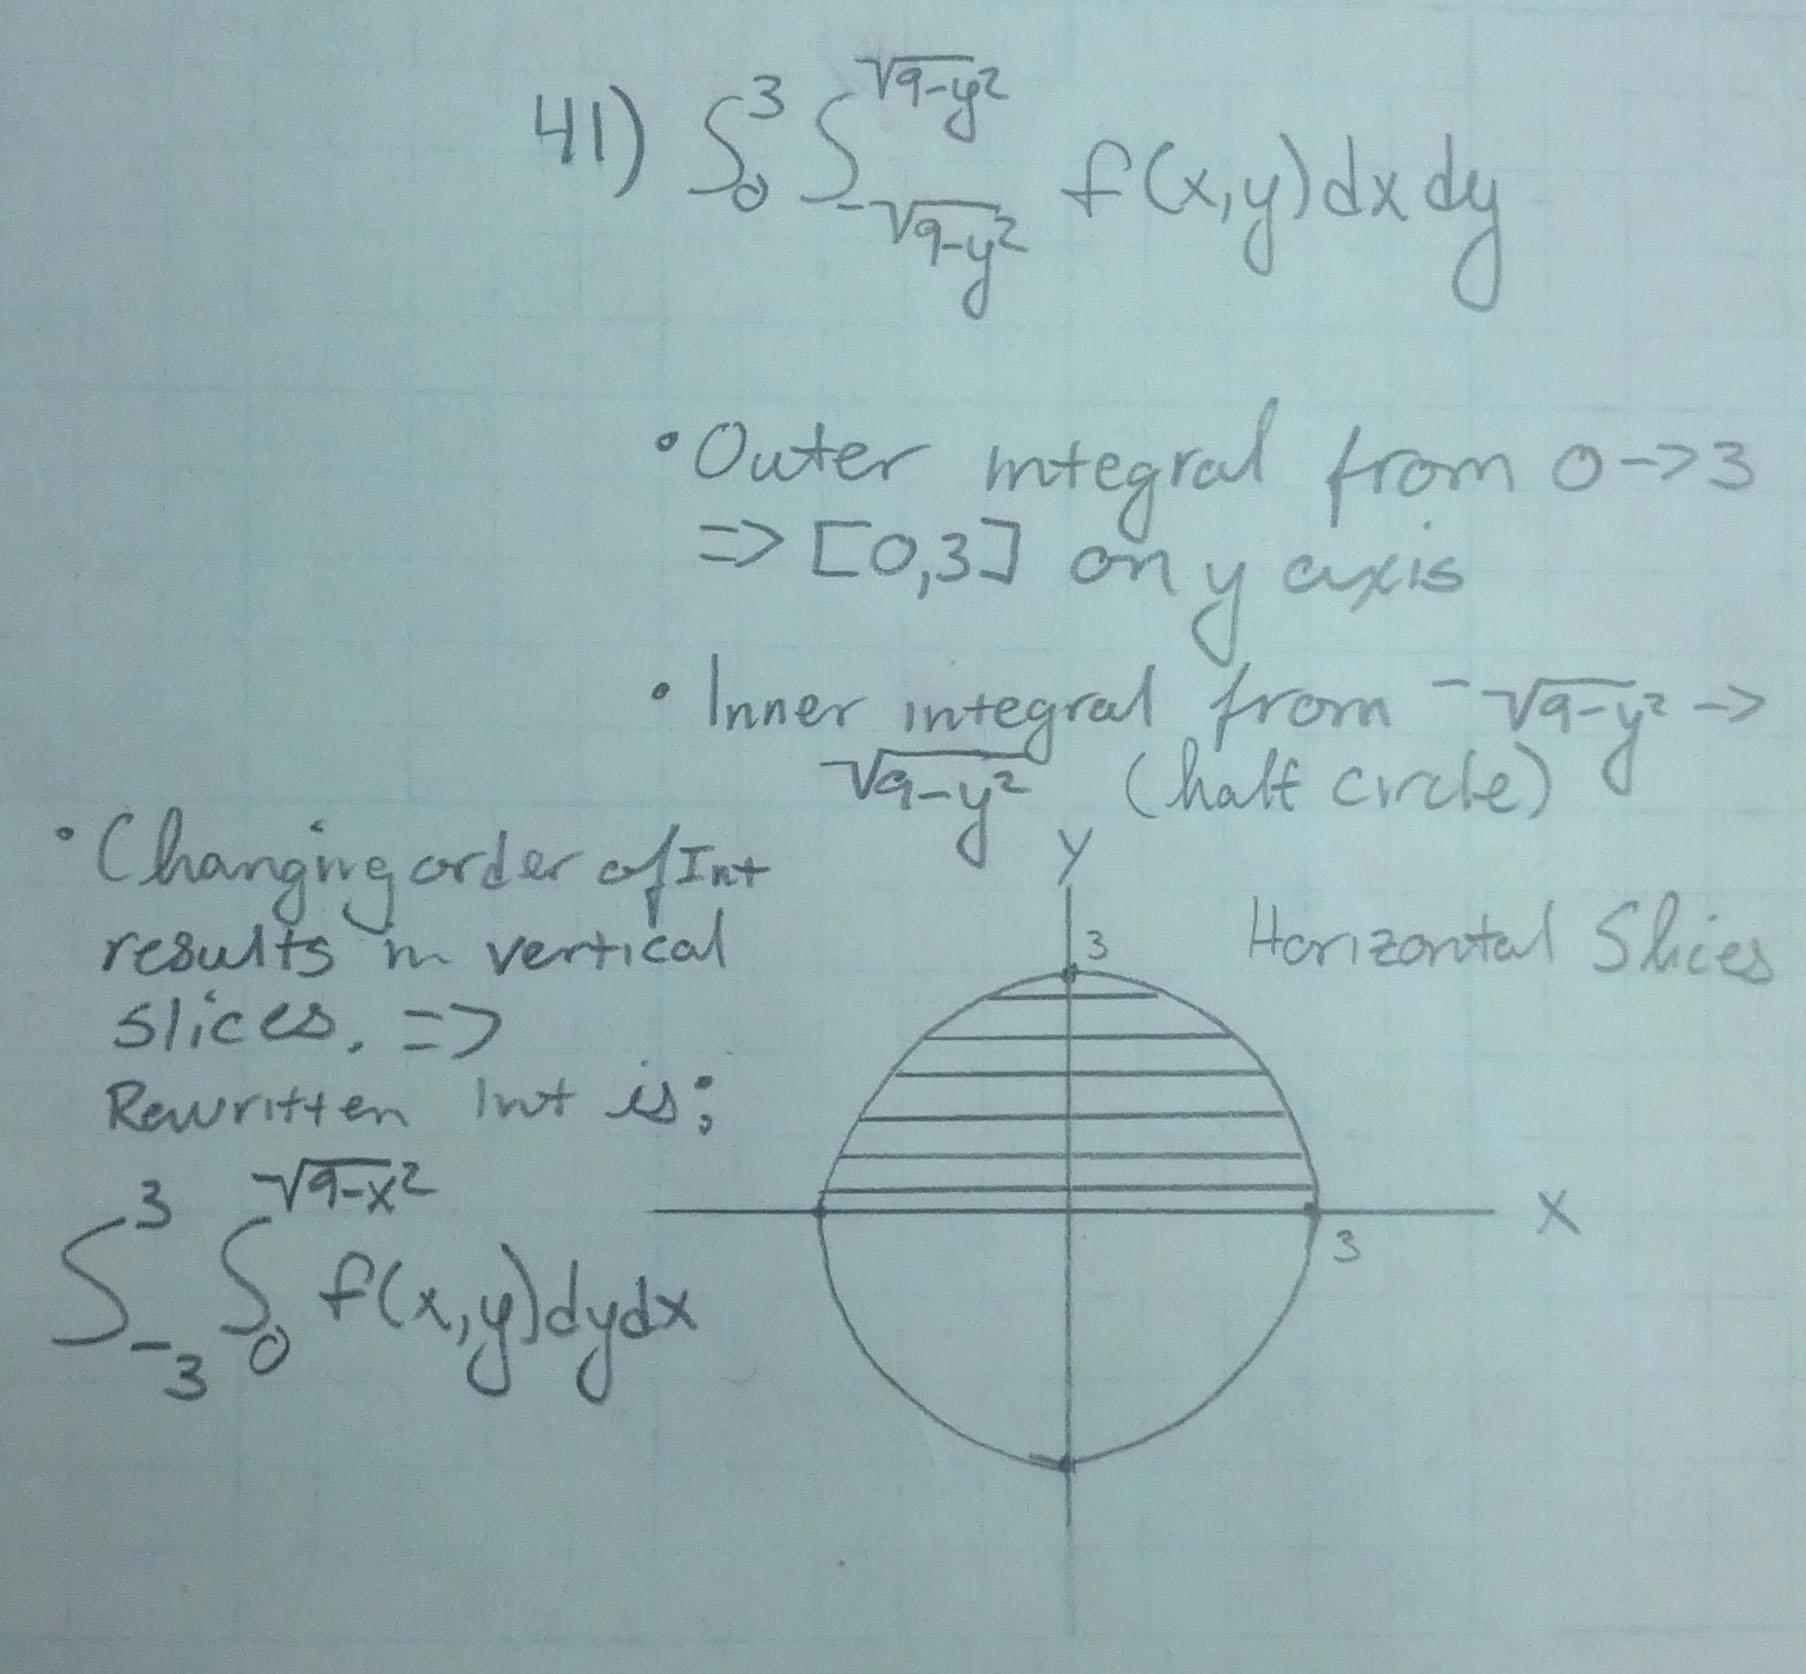 Solutions to Stewart Calculus (9781439049273), Pg  1009, Ex  41